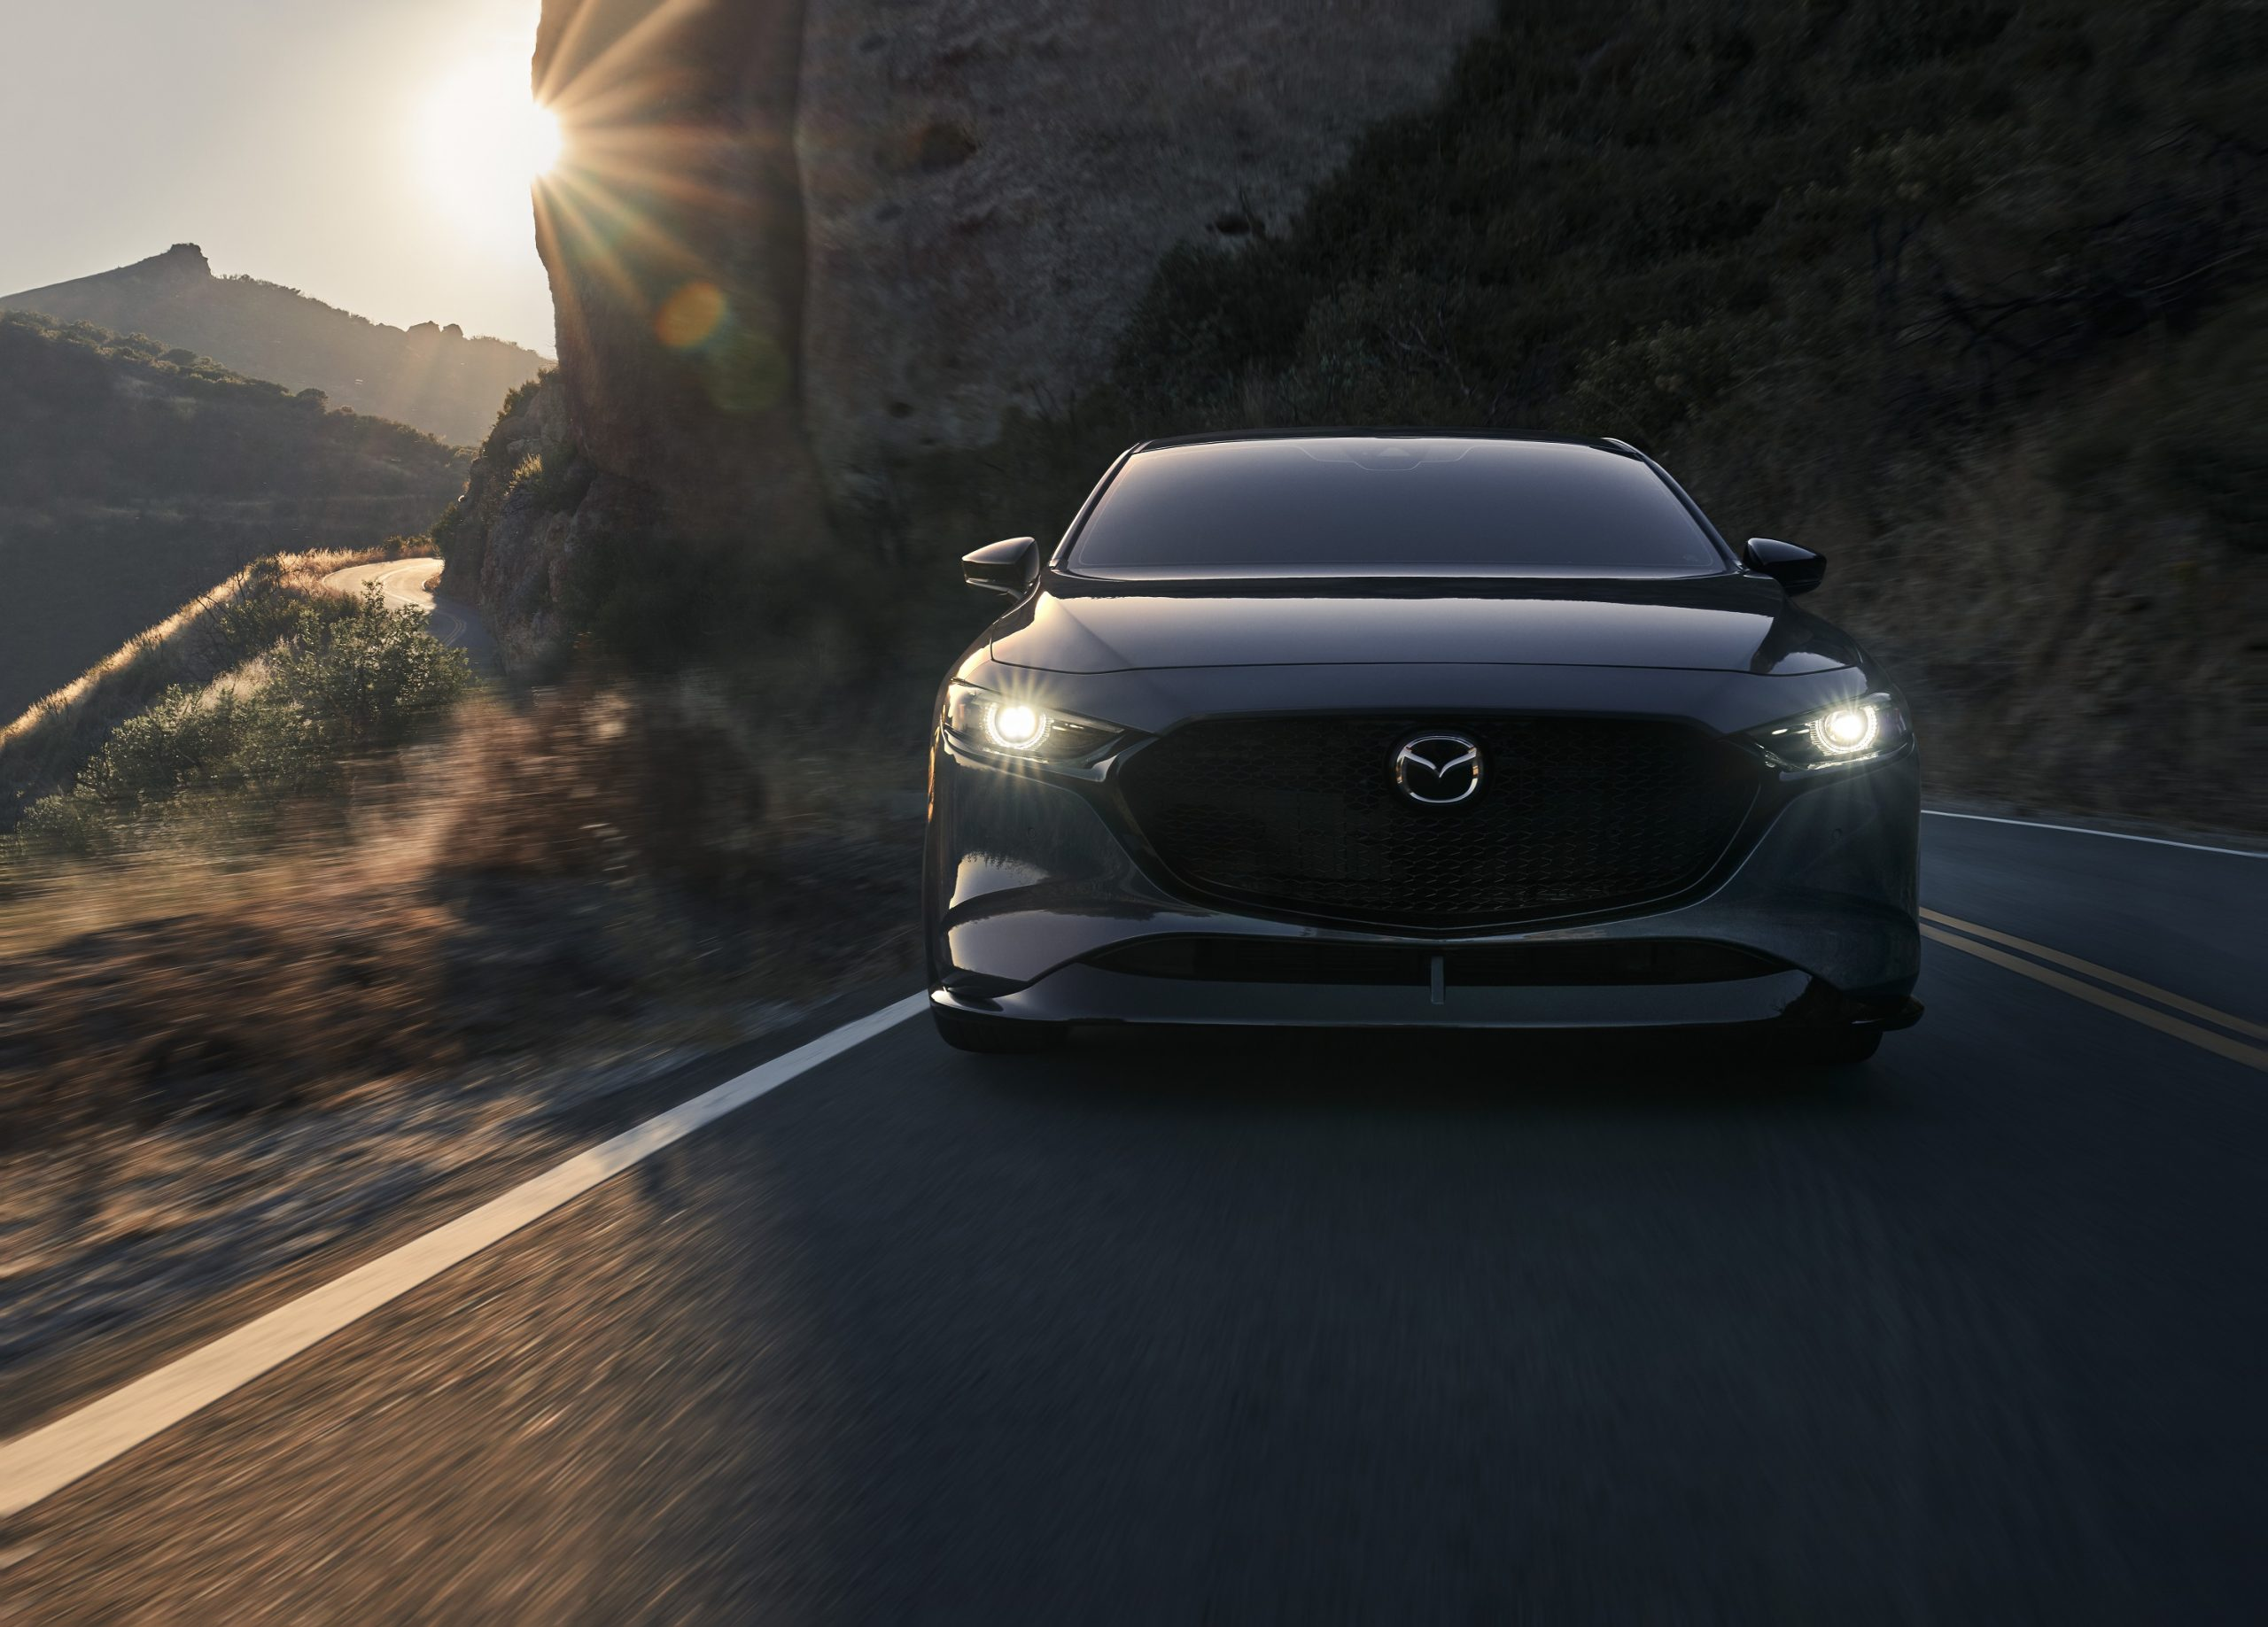 A grey Mazda 3 AWD hatchback shot from the front on a canyon road at sunset